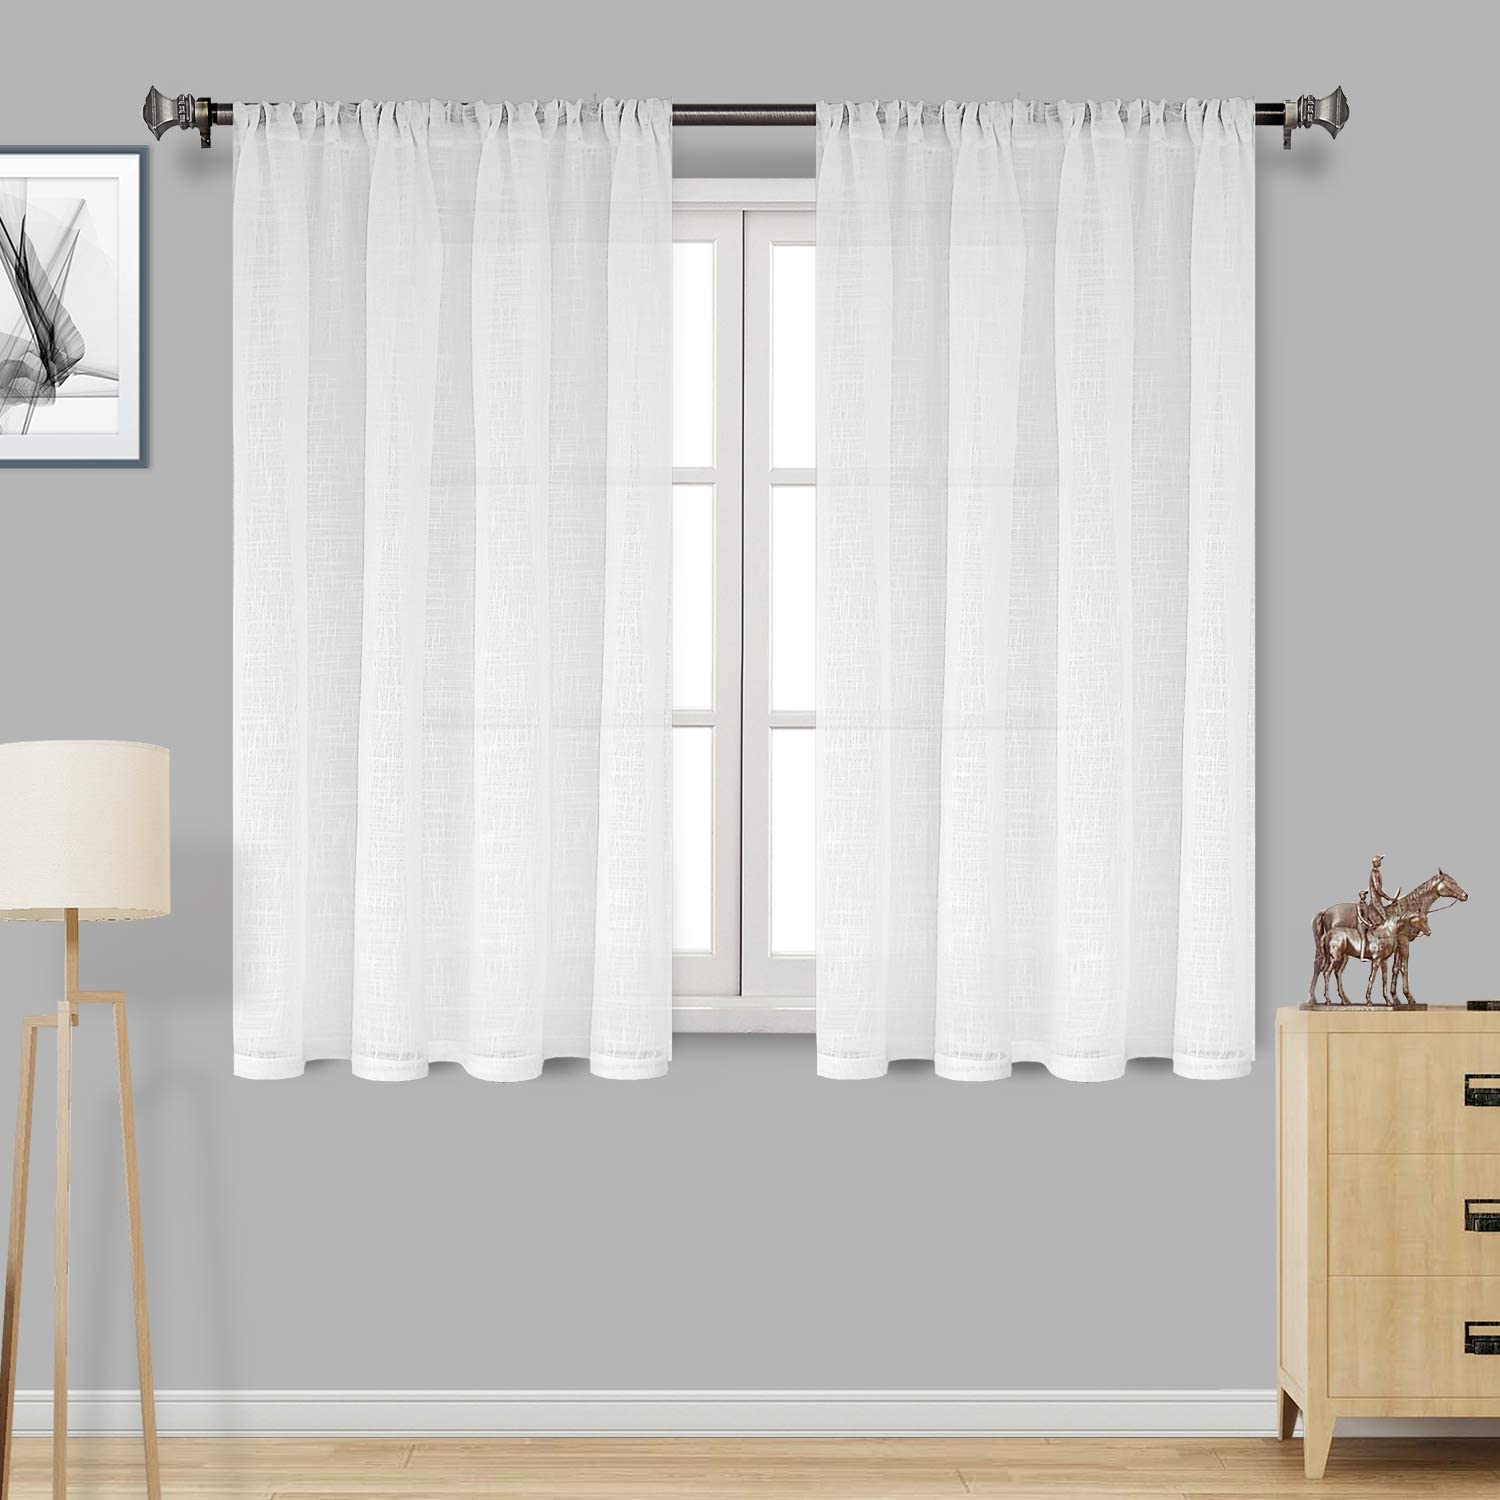 DWCN White Faux Sales for sale Linen Sheer Curtains Textured Sale special price Pocket Semi - Rod